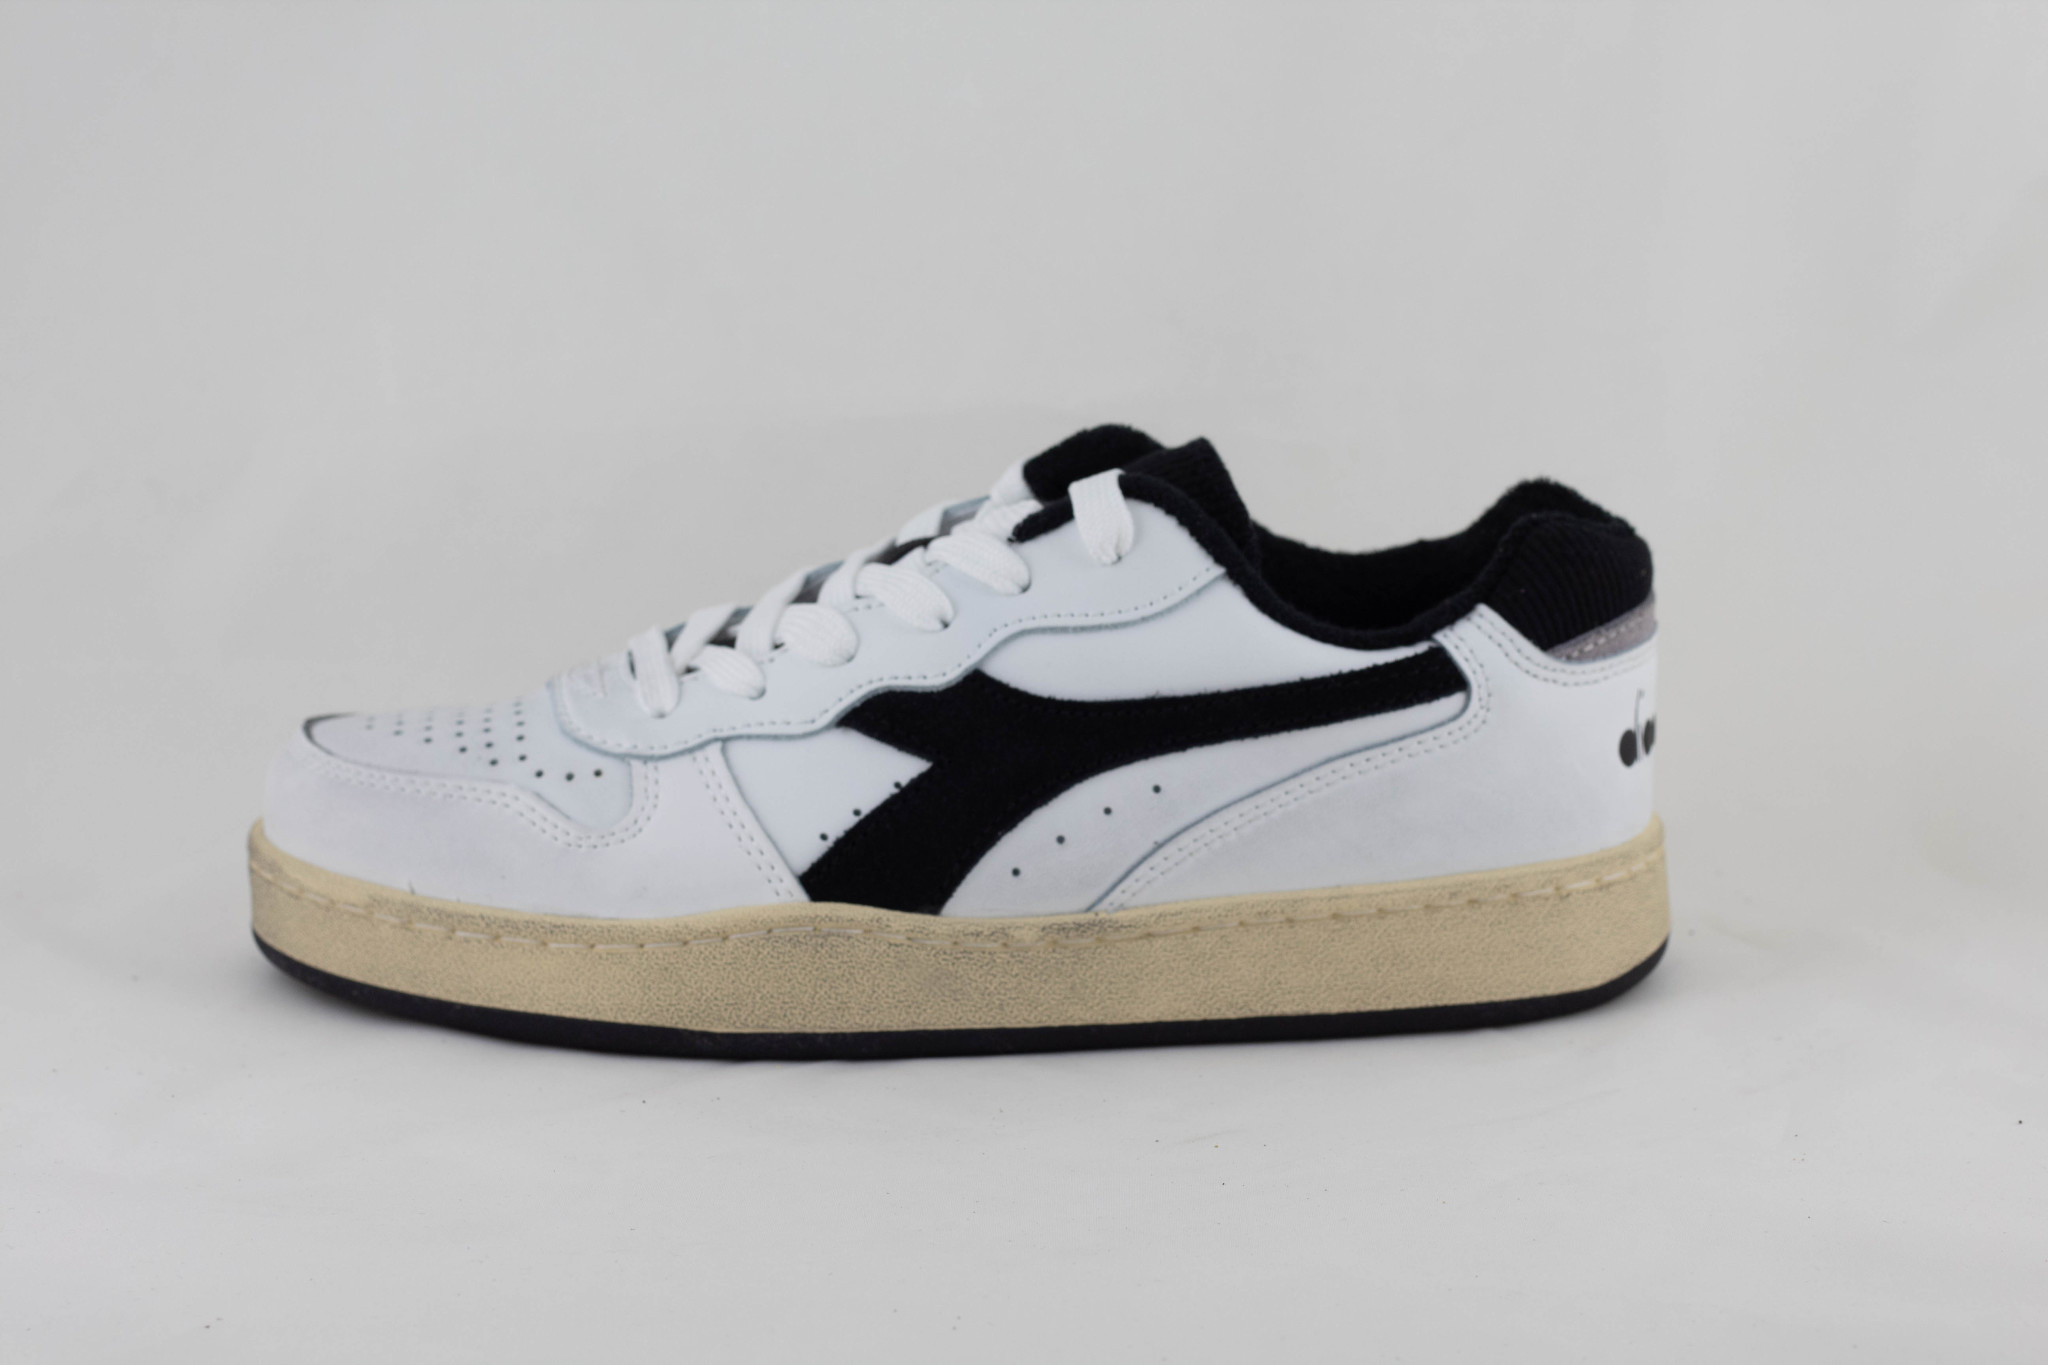 Diadora MI BASKET LOW USED White/ Black